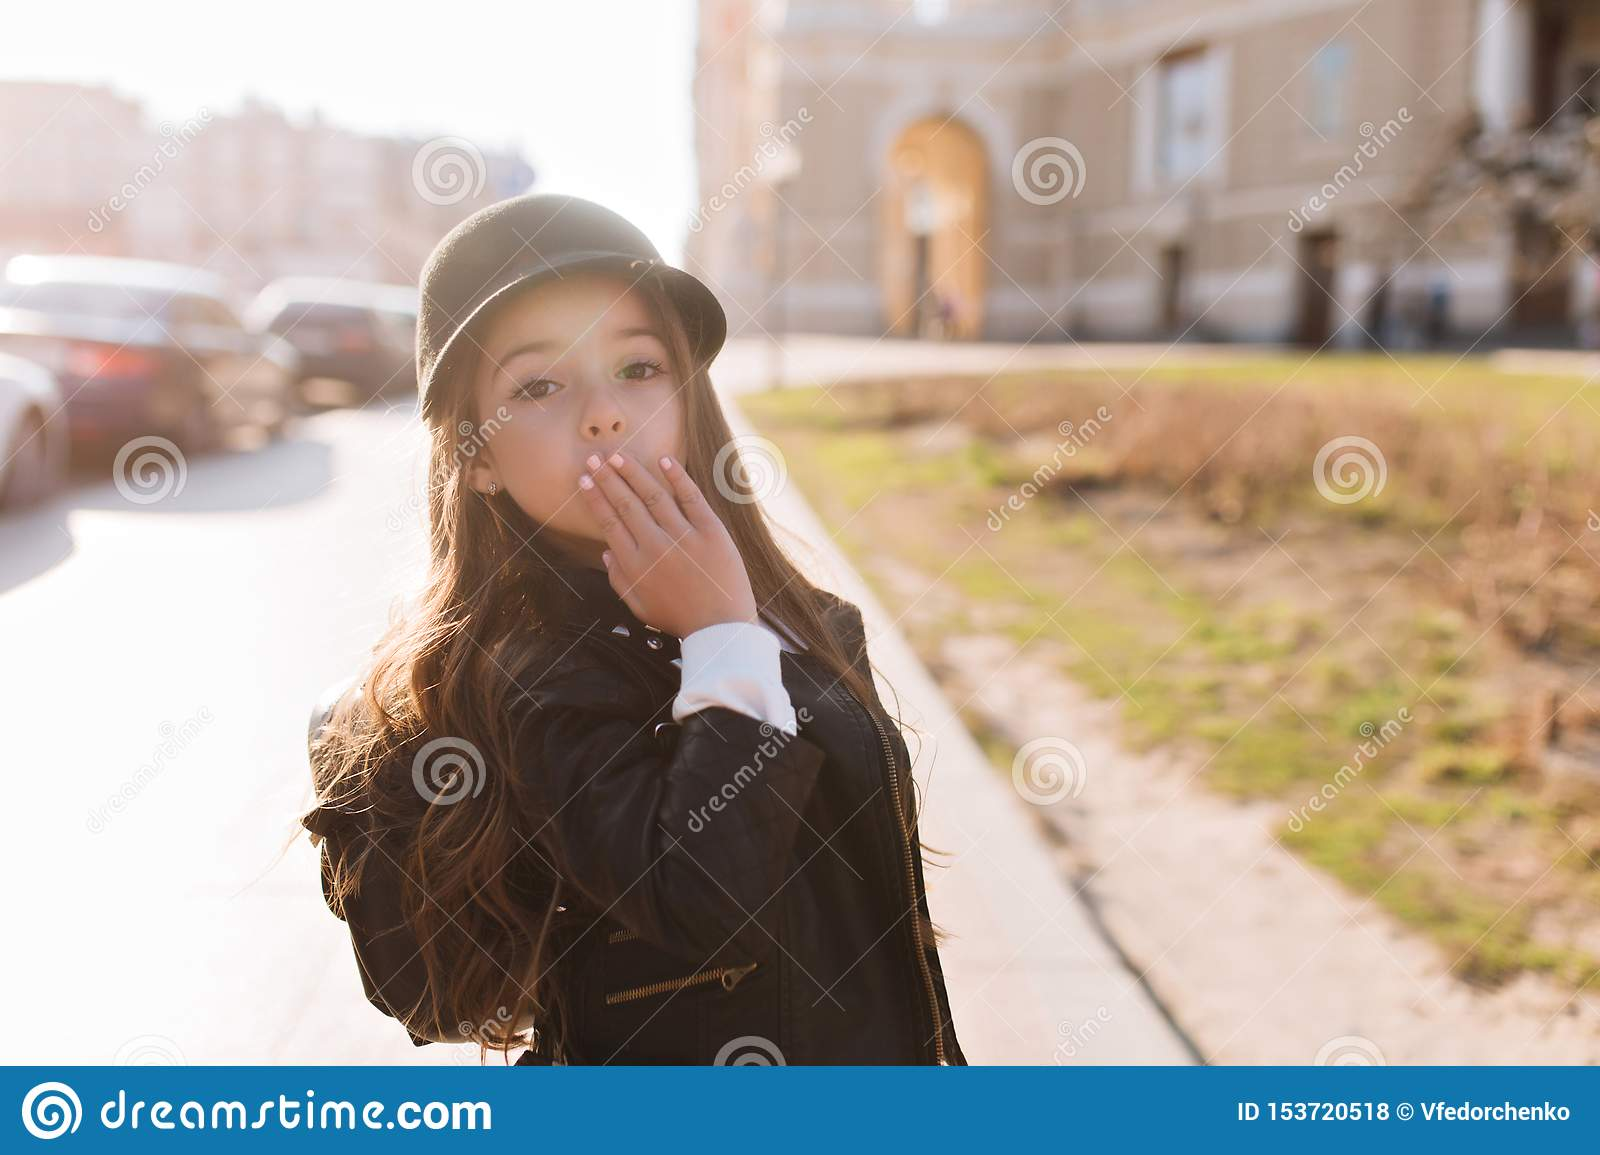 Stylish schoolgirl going home after classes, wearing backpack and trendy black hat. Portrait of surprised little girl